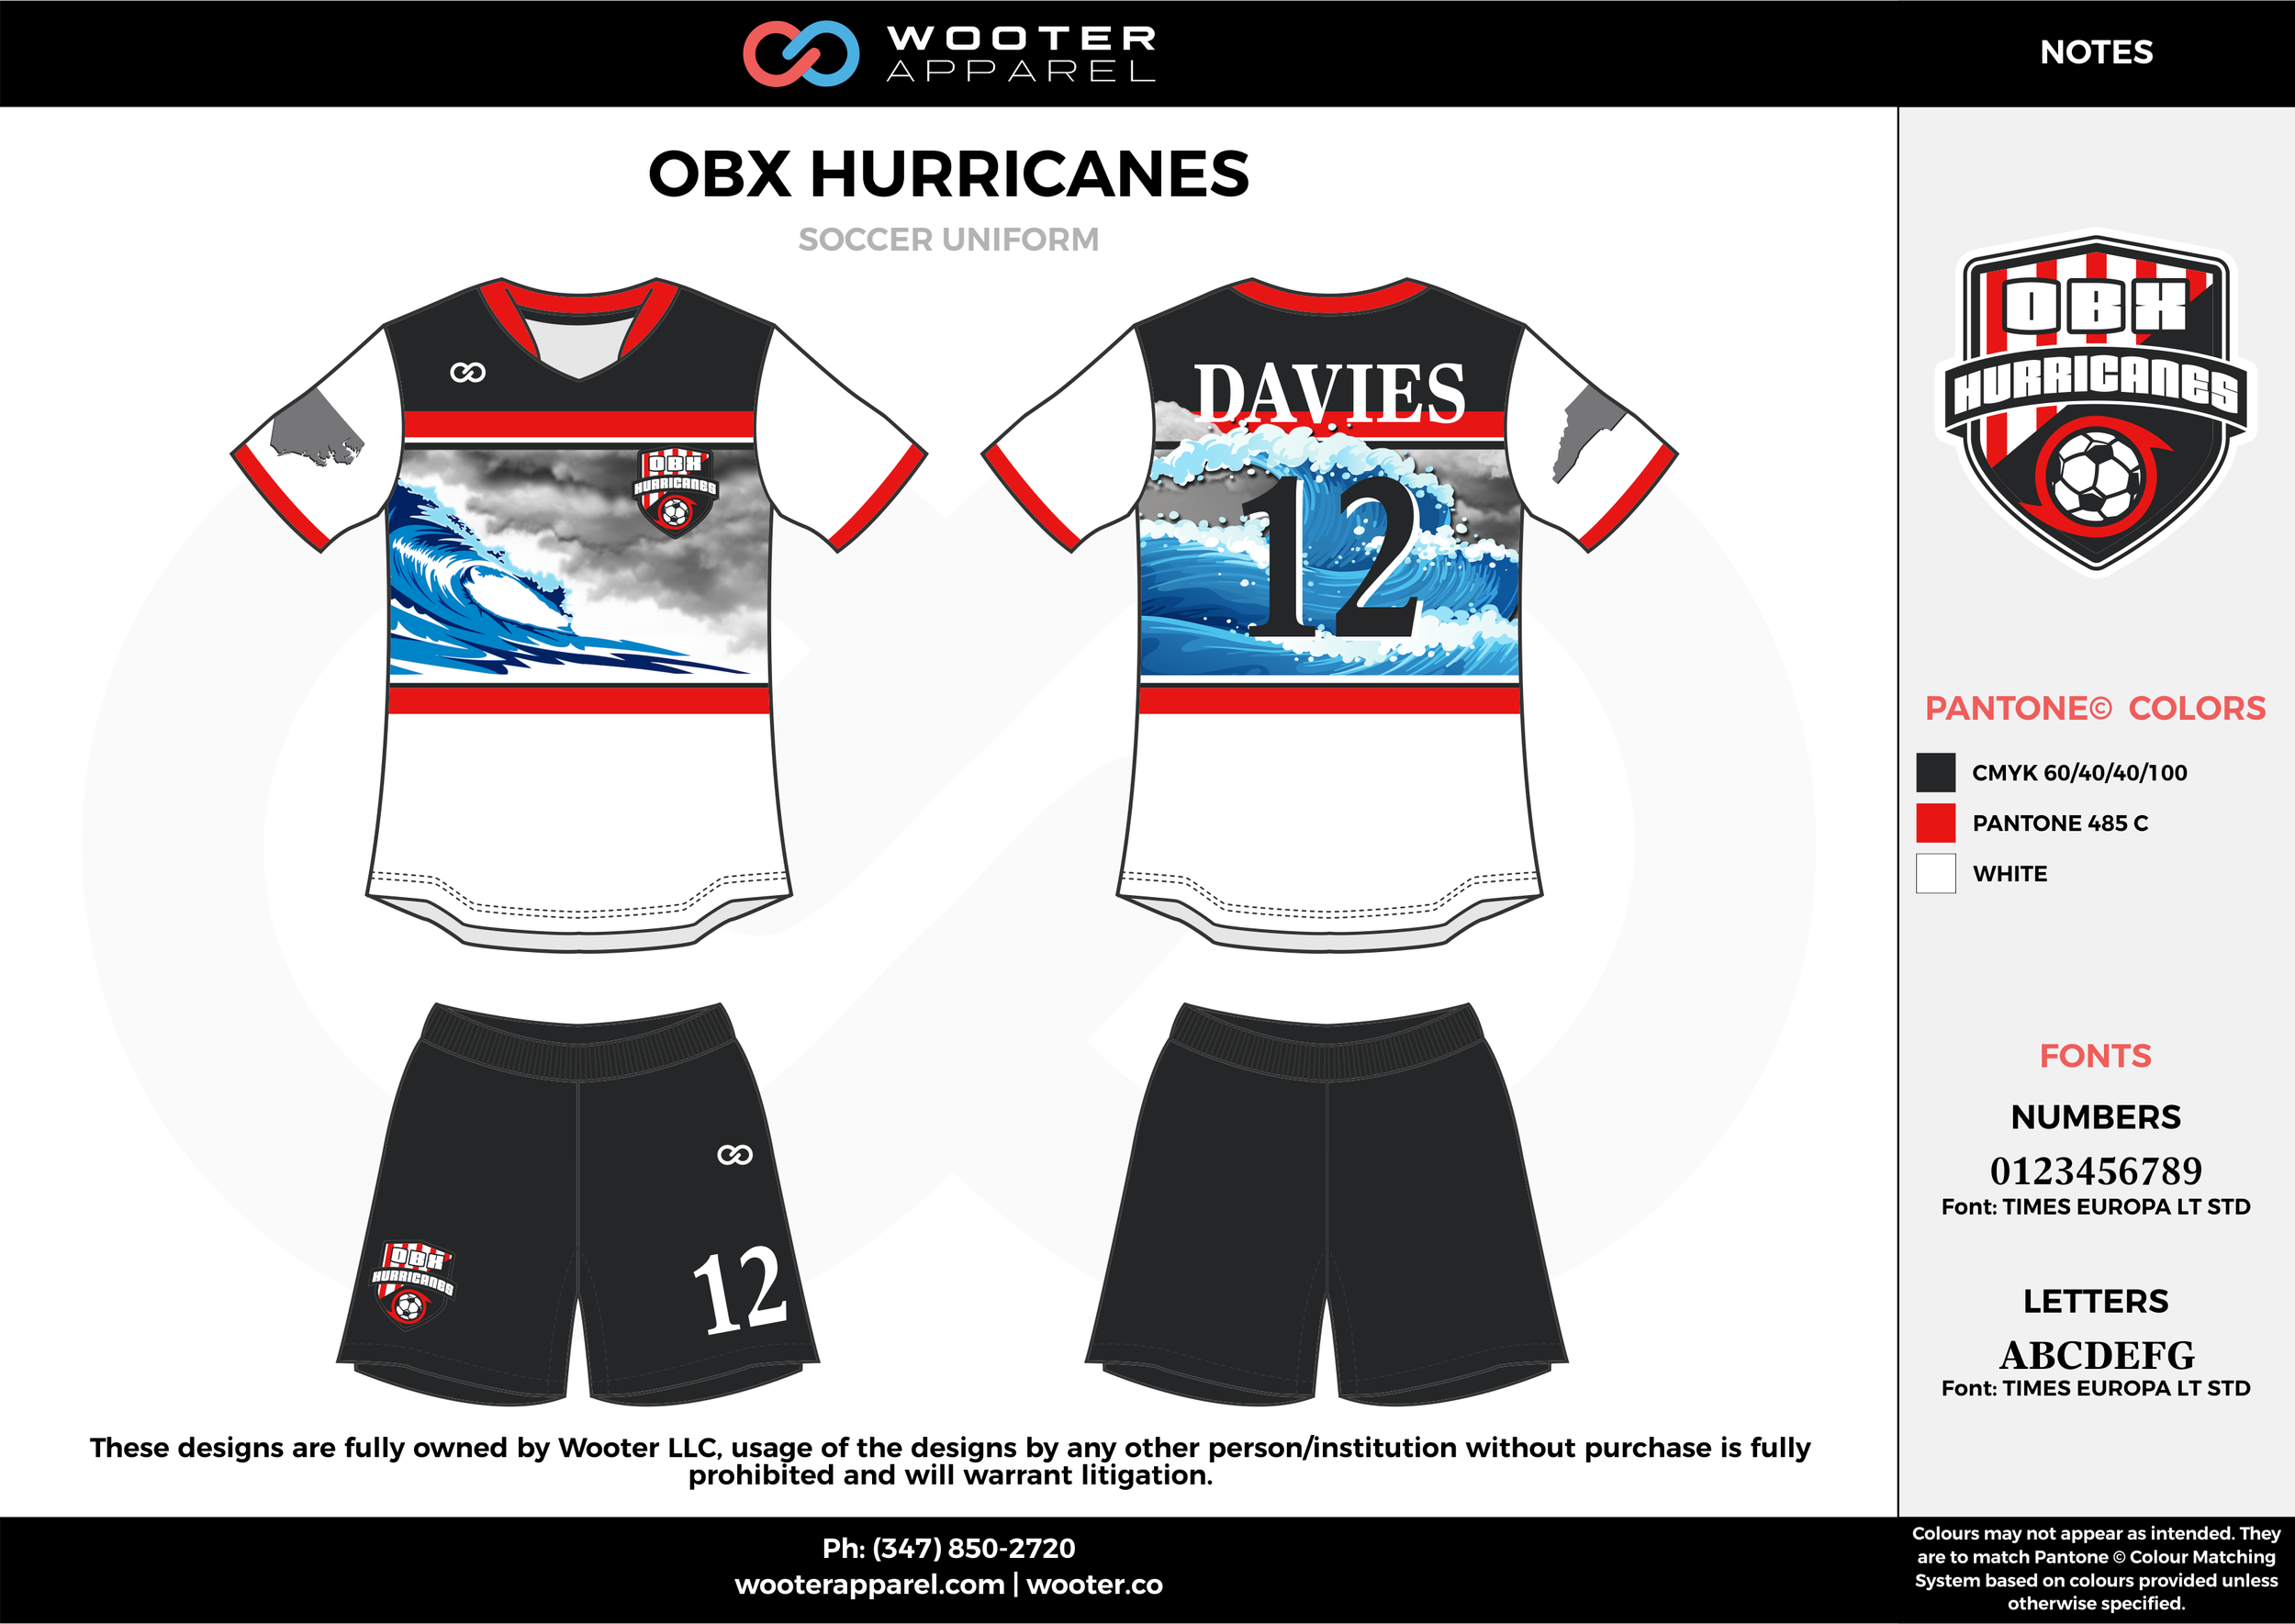 OBX HURRICANES black red white custom sublimated soccer uniform jersey shirt shorts